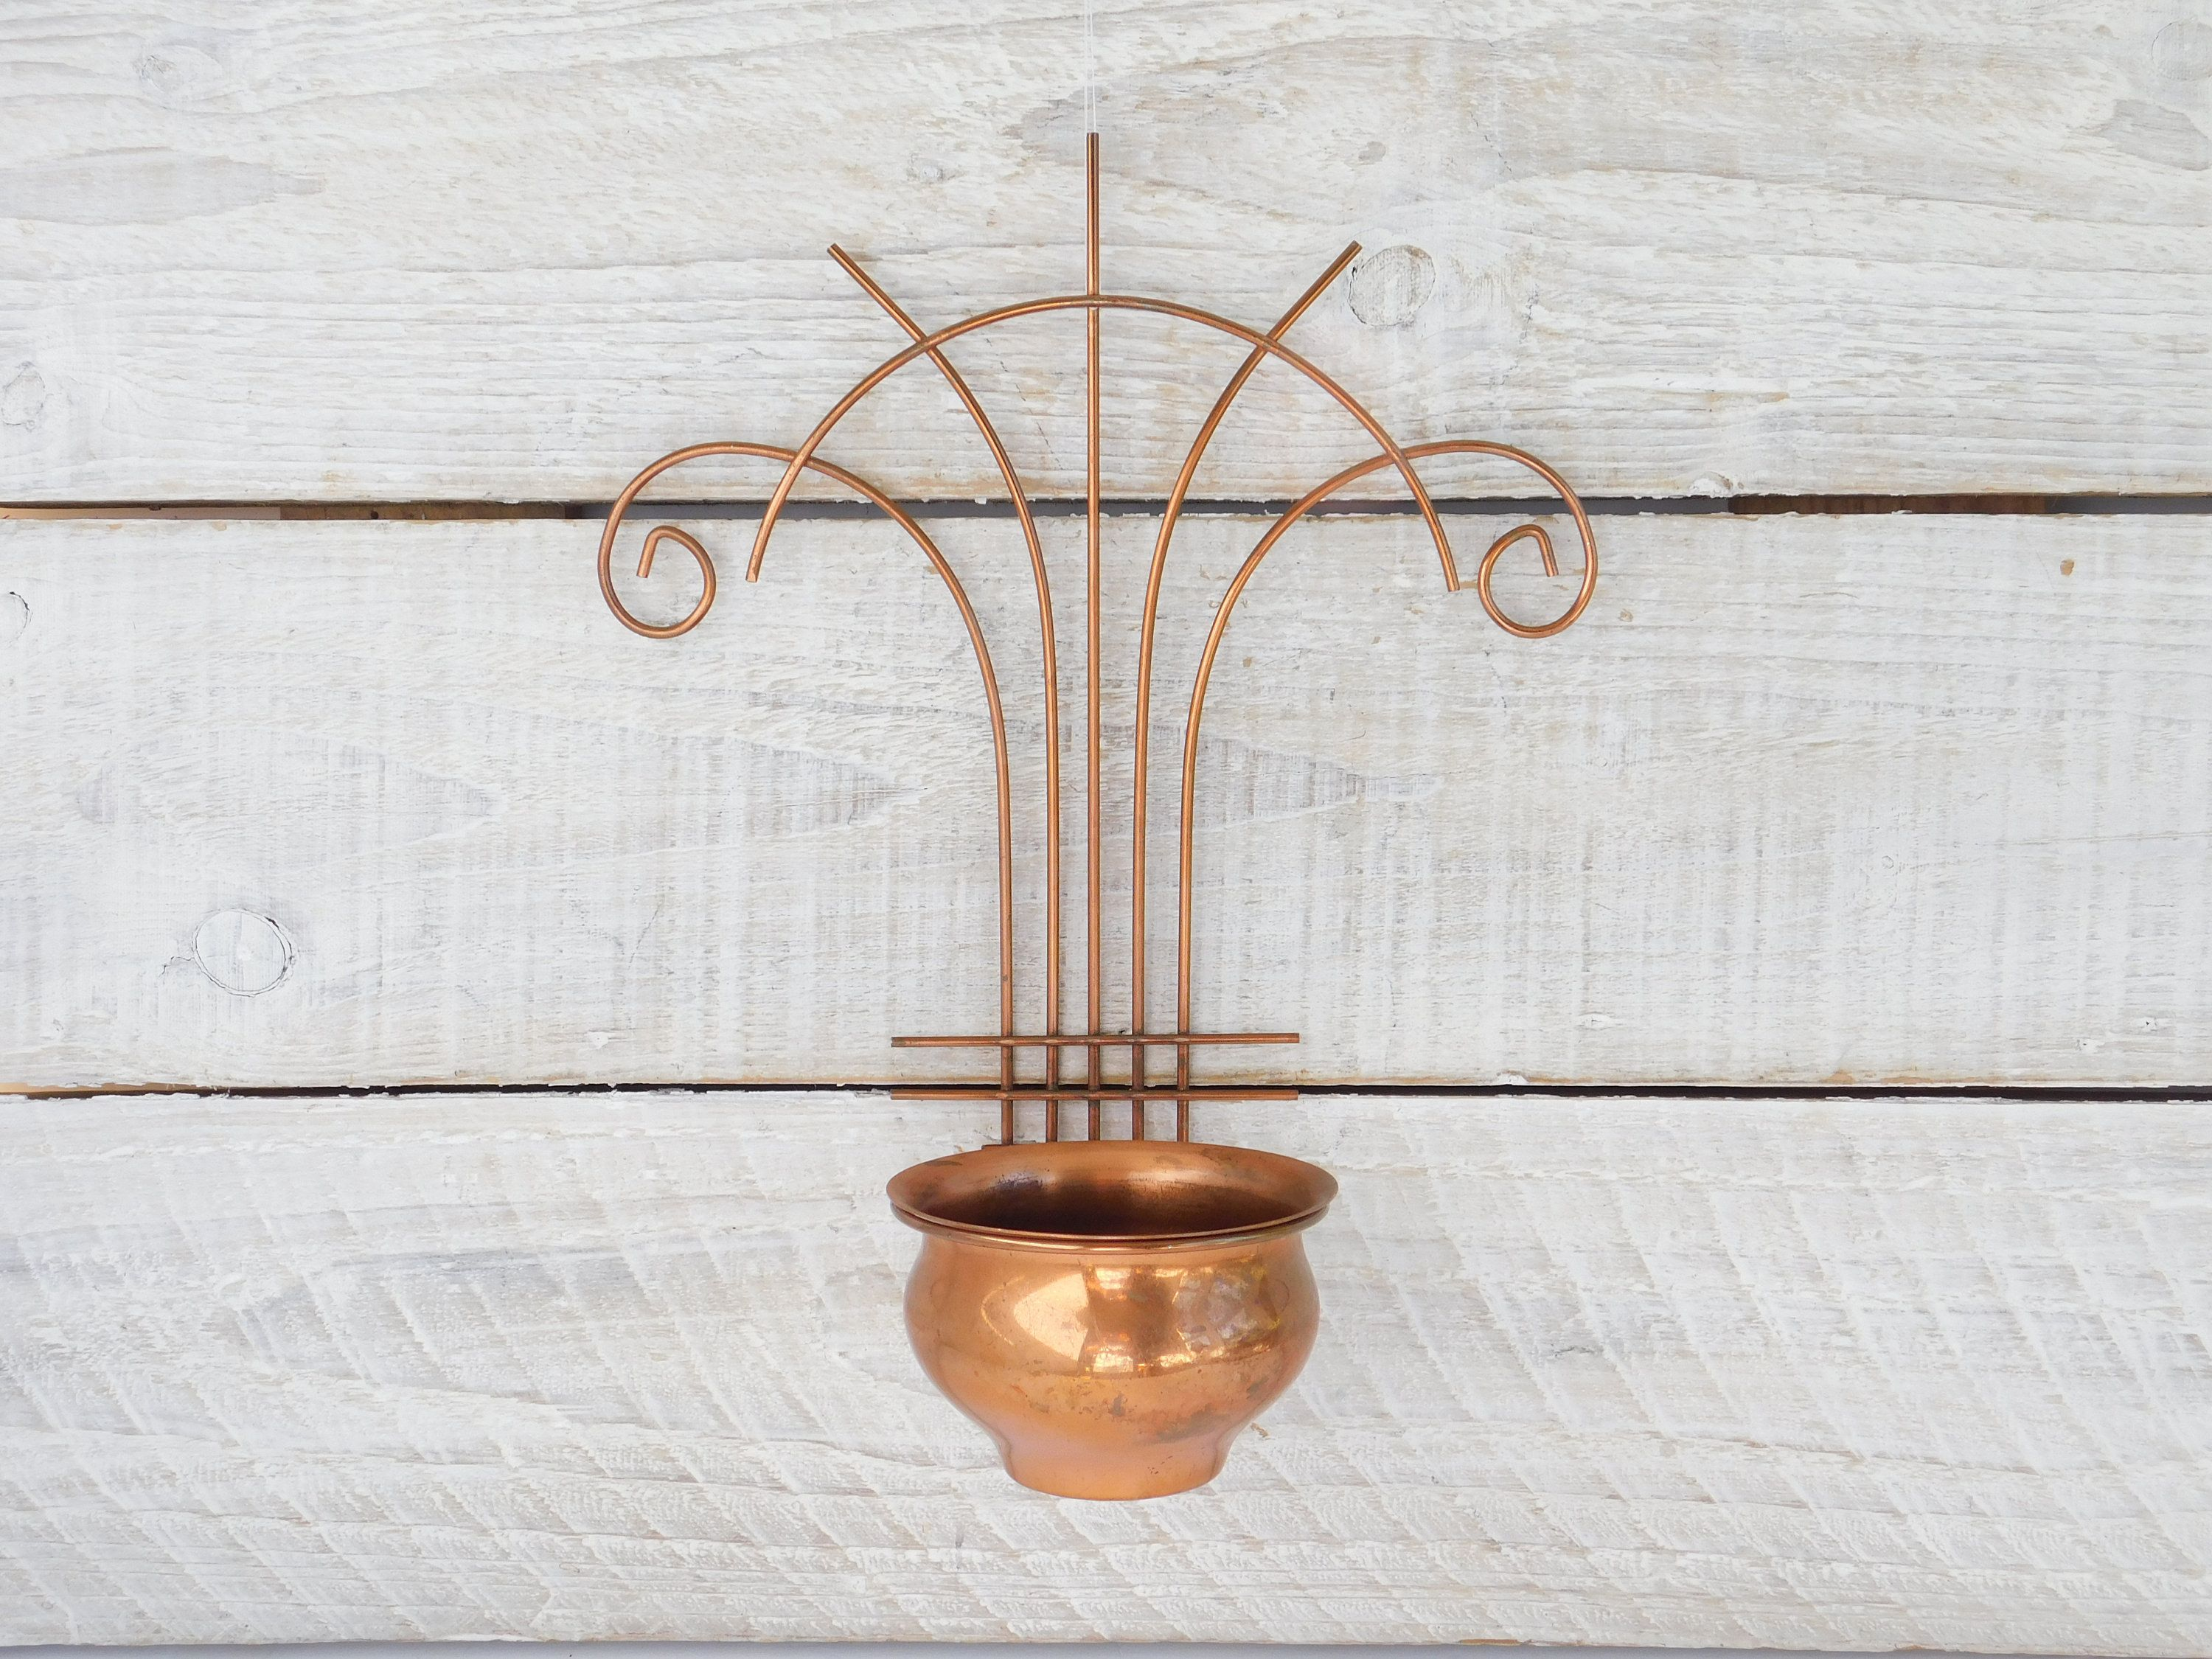 Vintage Copper Wall Hanging Planter Sconce Metal Wire Wall Etsy In 2020 Copper Wall Wall Vase Copper Wall Sconce